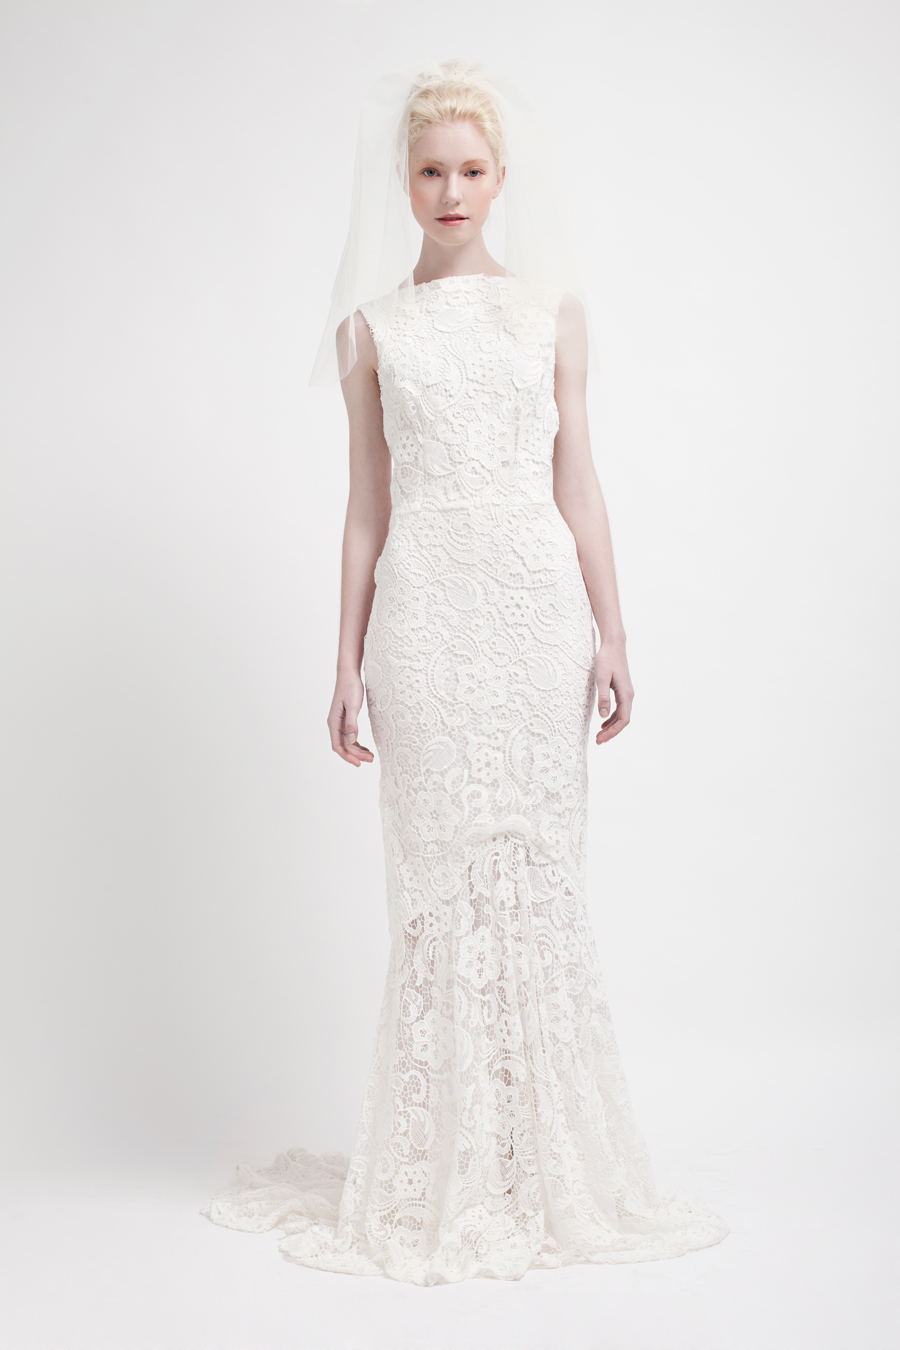 Verona - Kelsey Genna Debut Bridal Collection